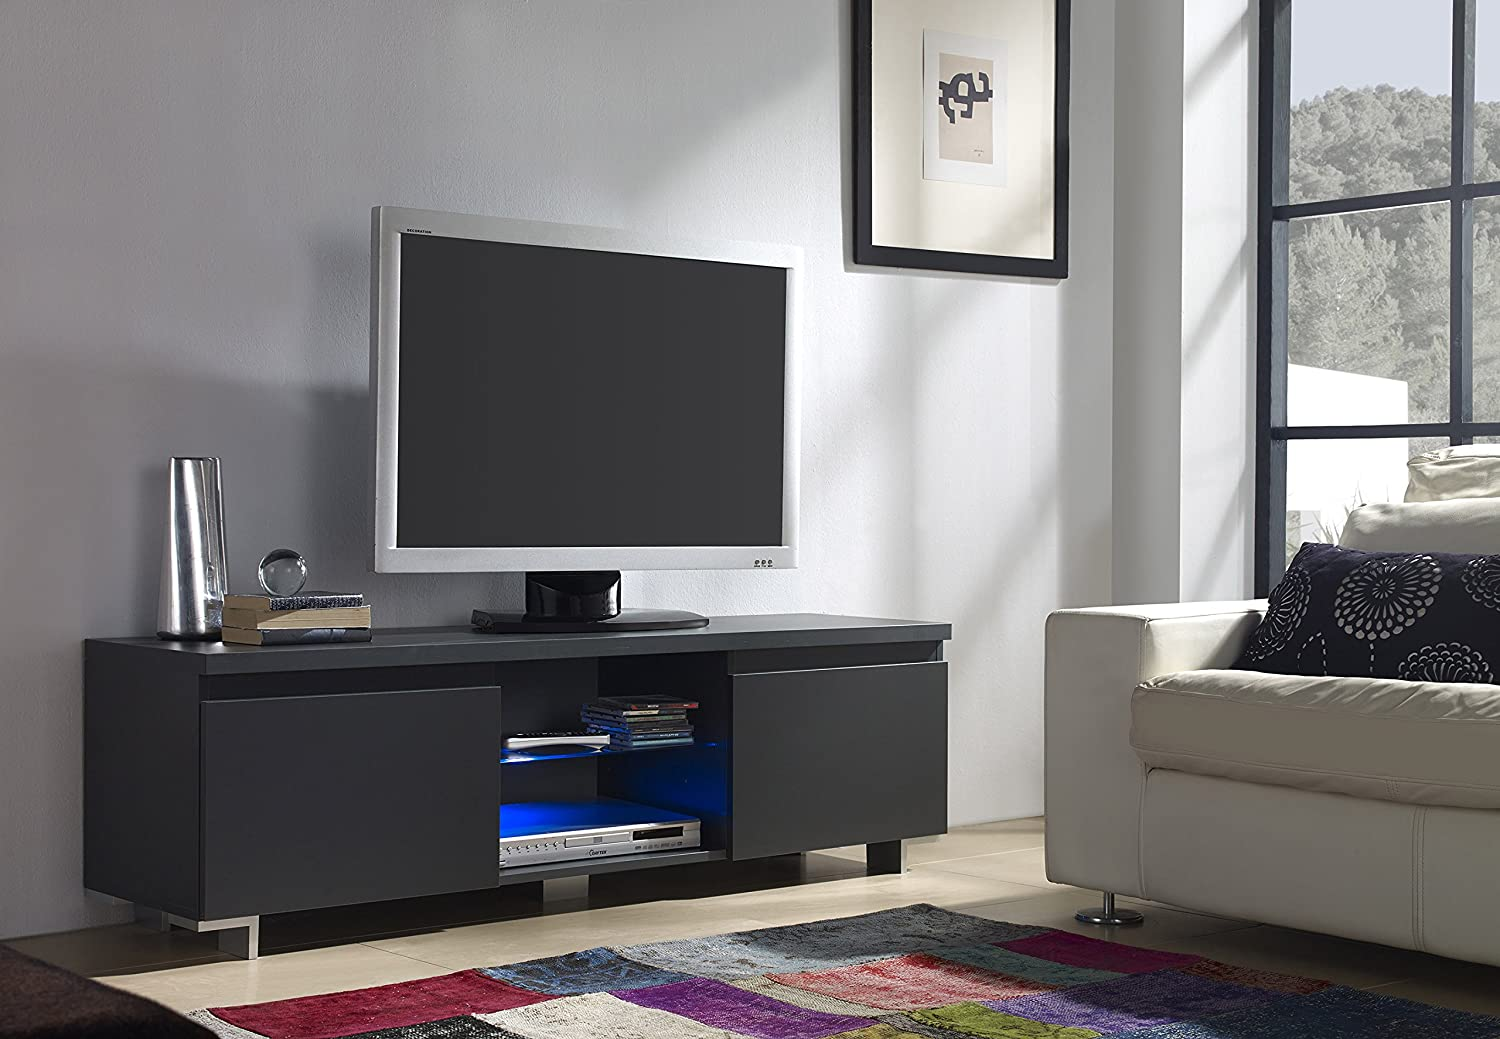 Meuble Tv 2 Porte En Gris Anthracite Avec Led Amazon Fr Cuisine  # Meuble Tv Laque Gris Anthracite